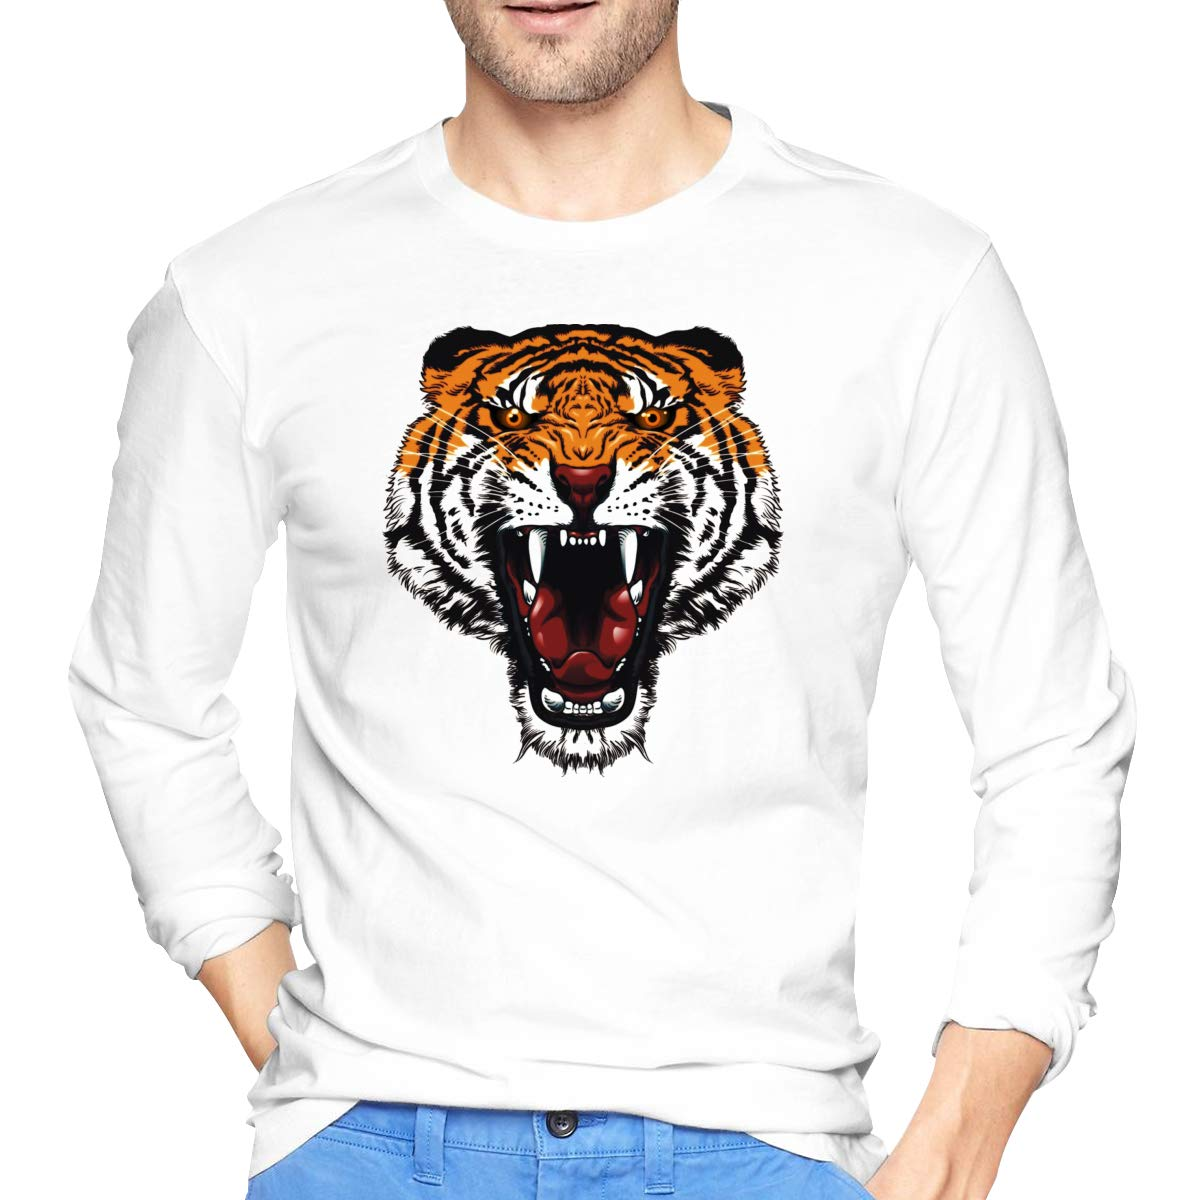 Tiger Will Bite Cool Graphic Printed T Shirt 4094